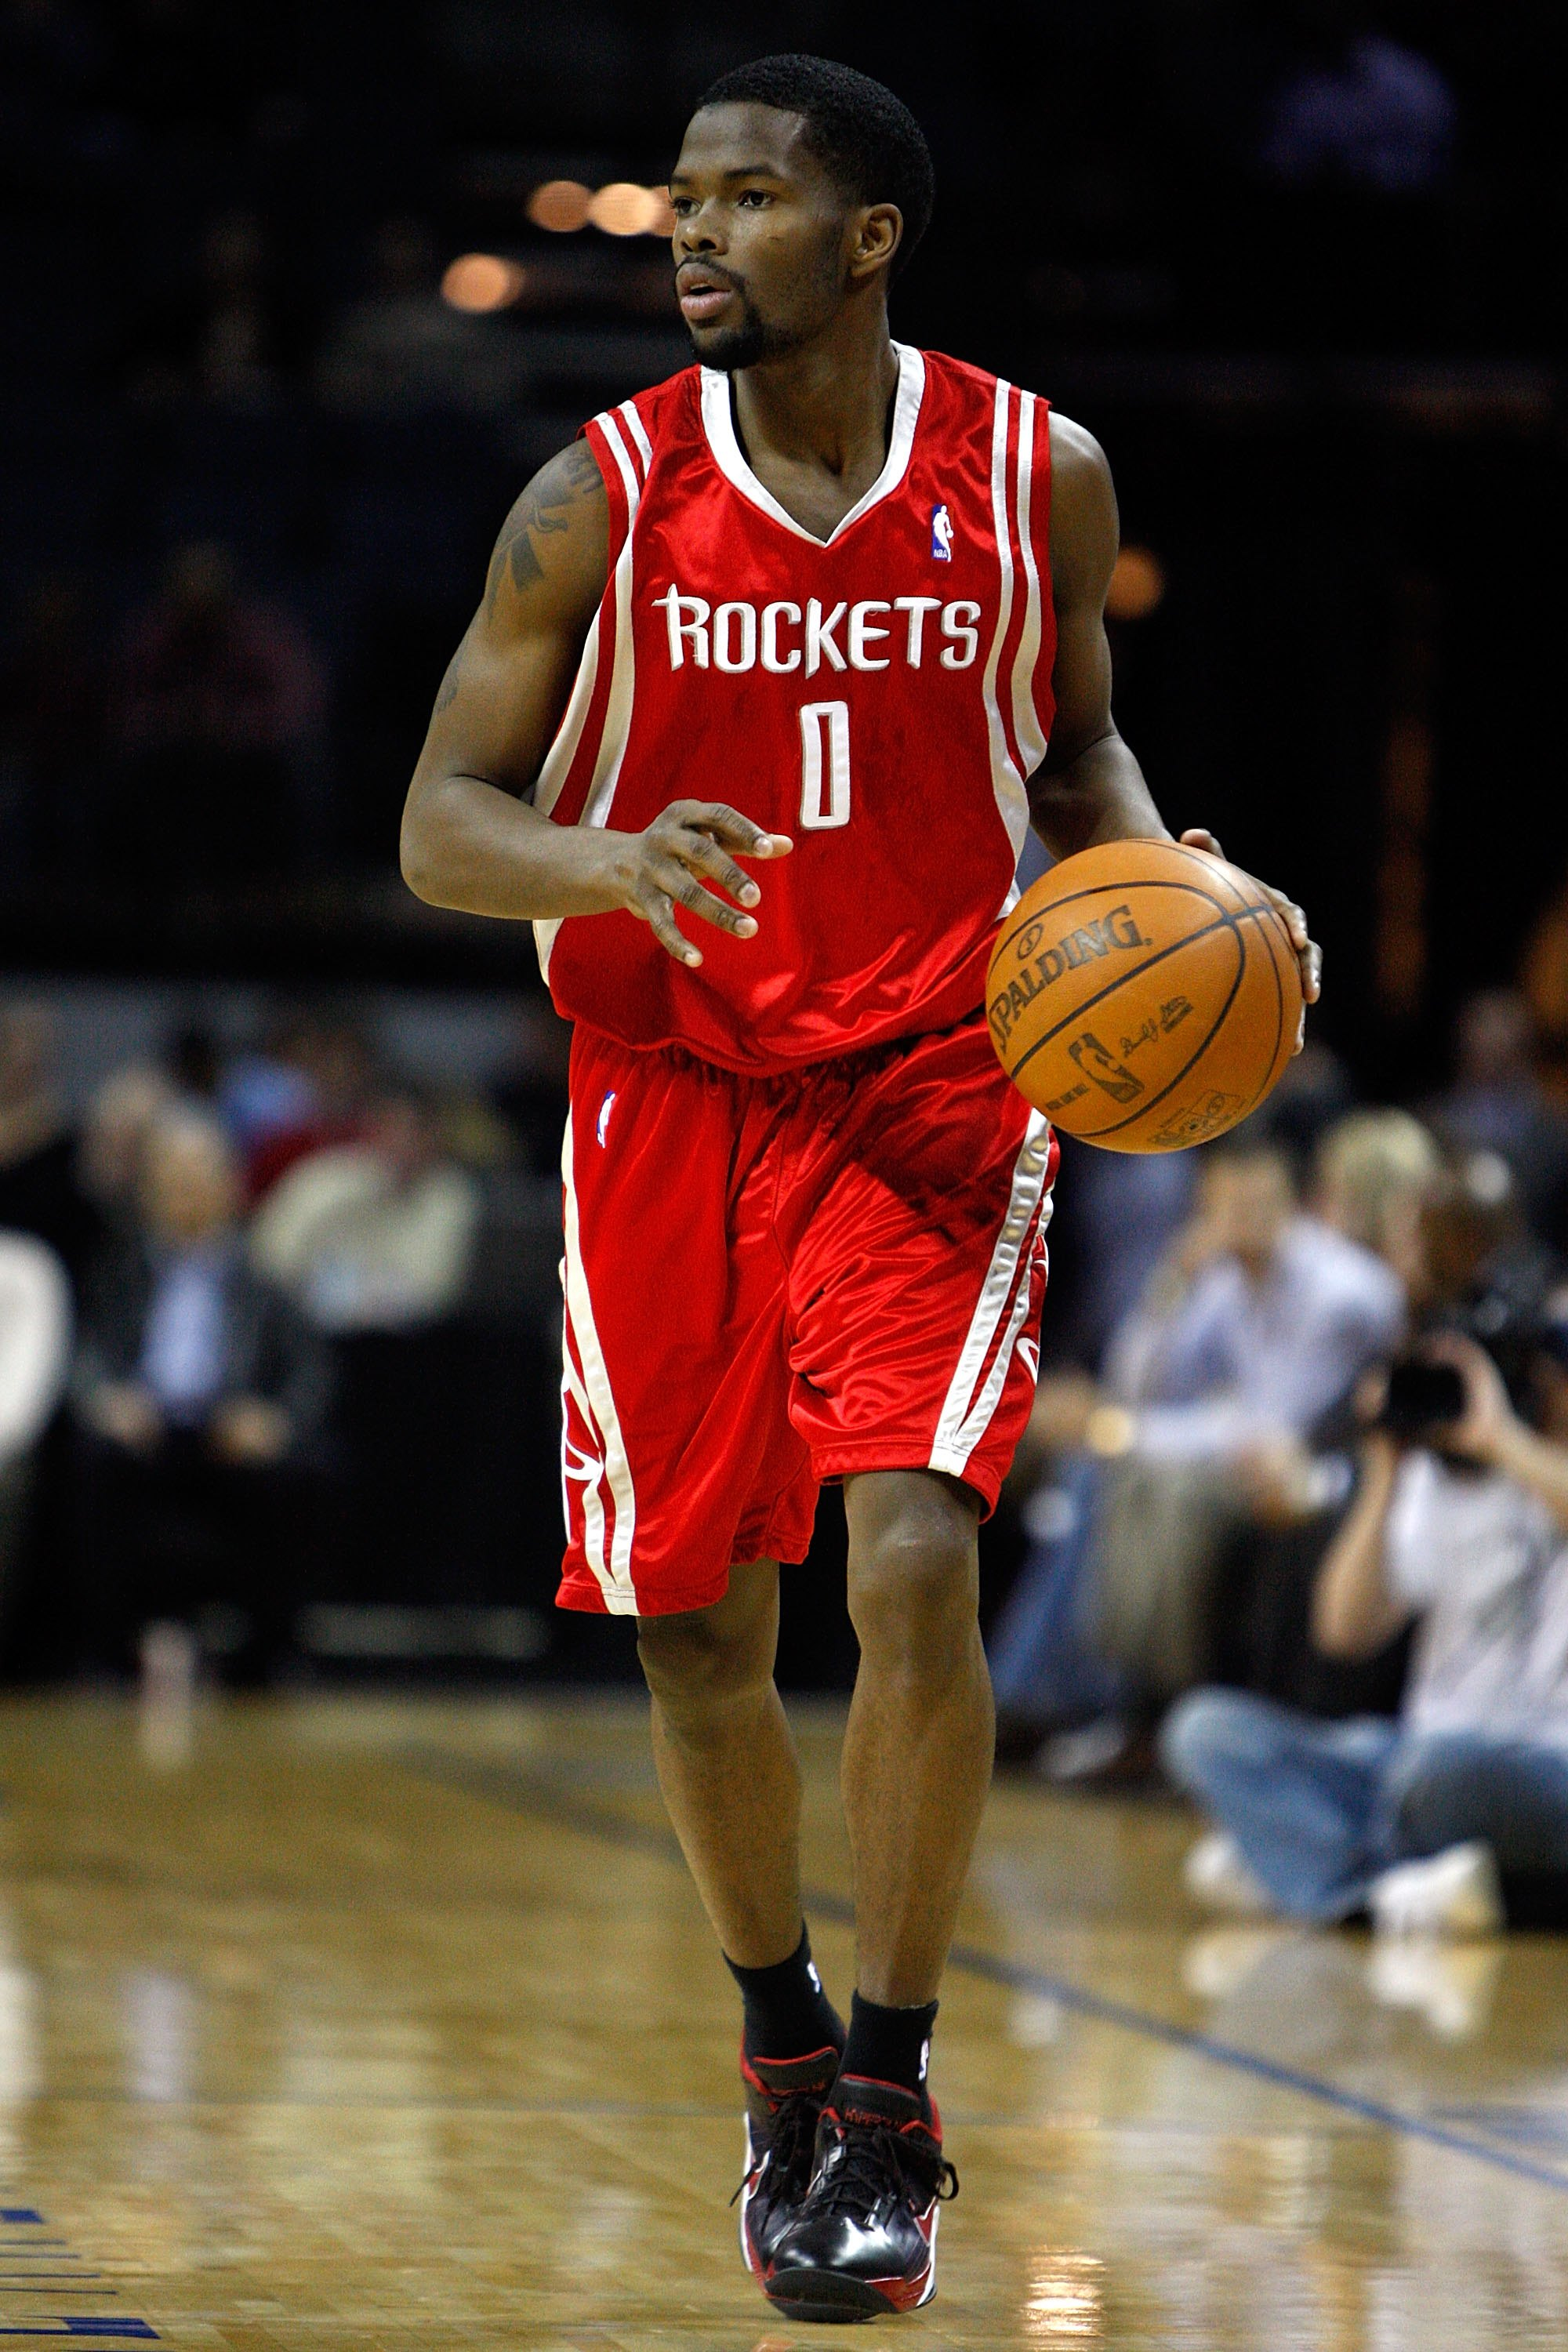 CHARLOTTE, NC - JANUARY 12:  Aaron Brooks #0 of the Houston Rockets brings the ball up court during the game against the Charlotte Bobcats on January 12, 2010 at Time Warner Cable Arena in Charlotte, North Carolina.  The Bobcats won 102-94.  NOTE TO USER: